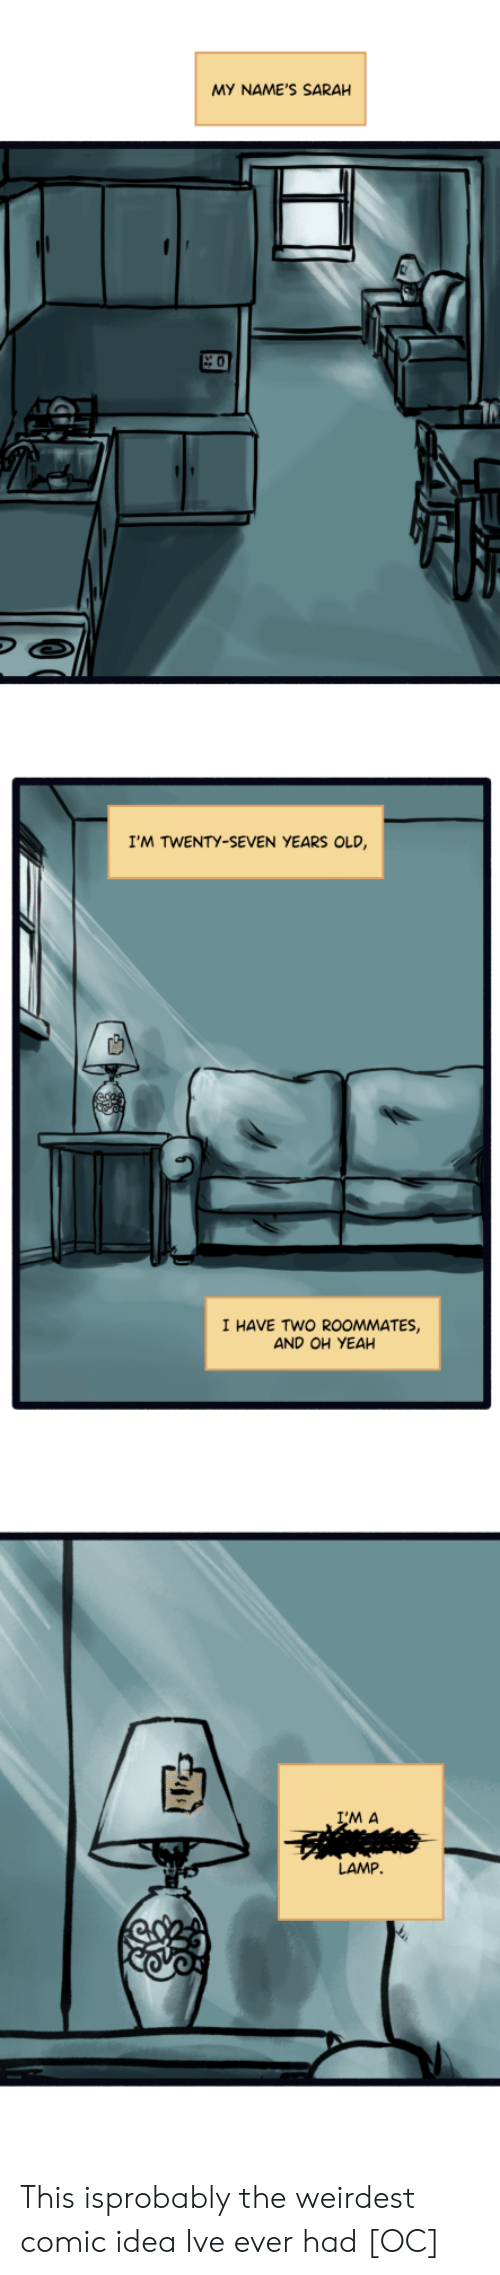 Yeah, Old, and Idea: MY NAME'S SARAH  0  I'M TWENTY-SEVEN YEARS OLD  I HAVE TWO ROOMMATES,  AND OH YEAH  M A  LAMP This isprobably the weirdest comic idea Ive ever had [OC]